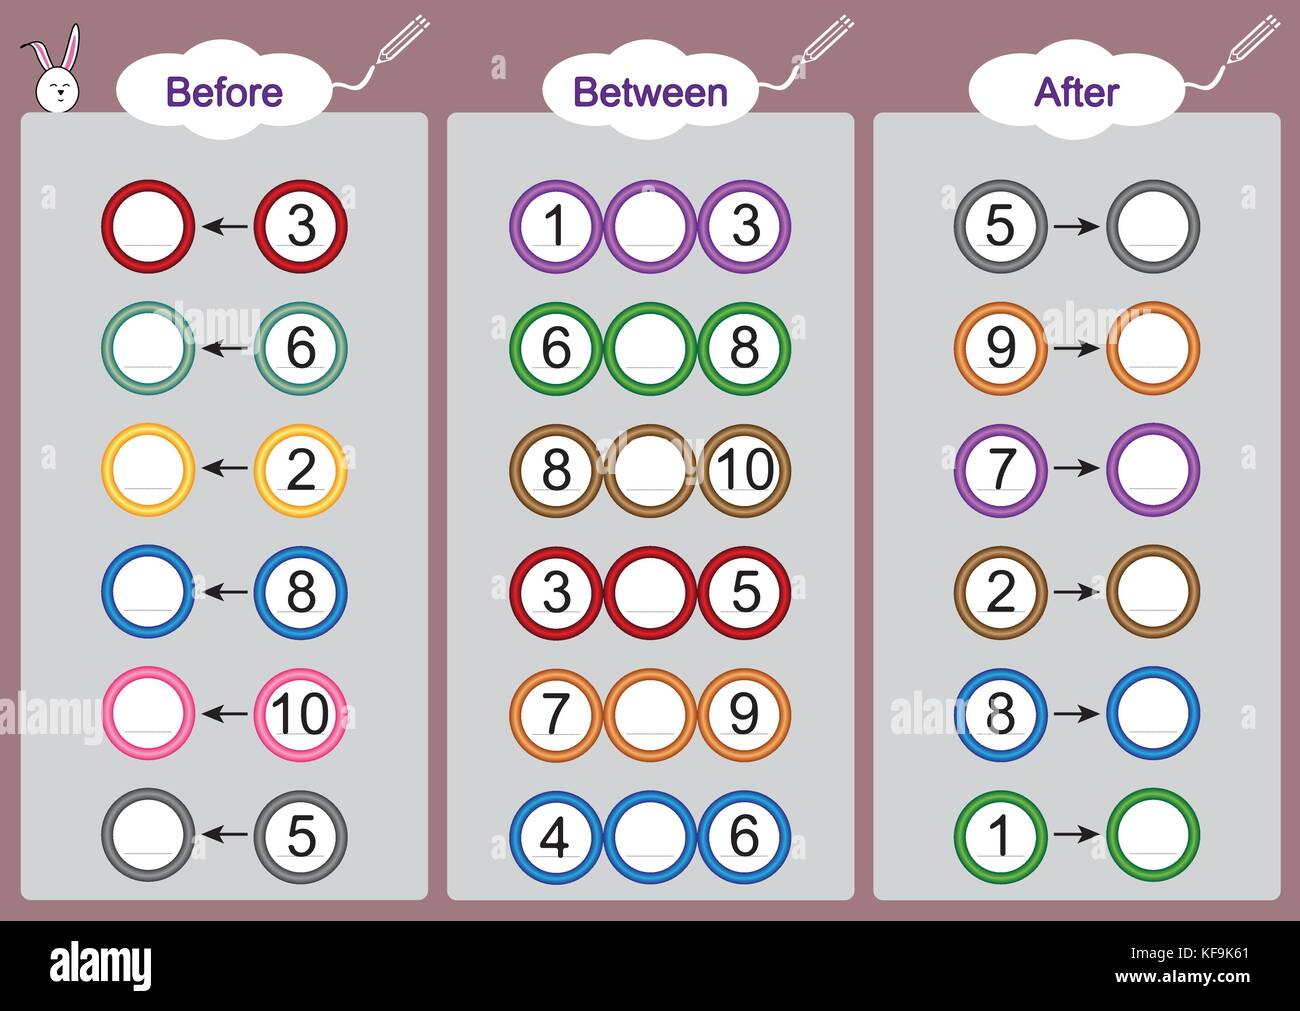 What Comes Before Between And After Math Worksheets For